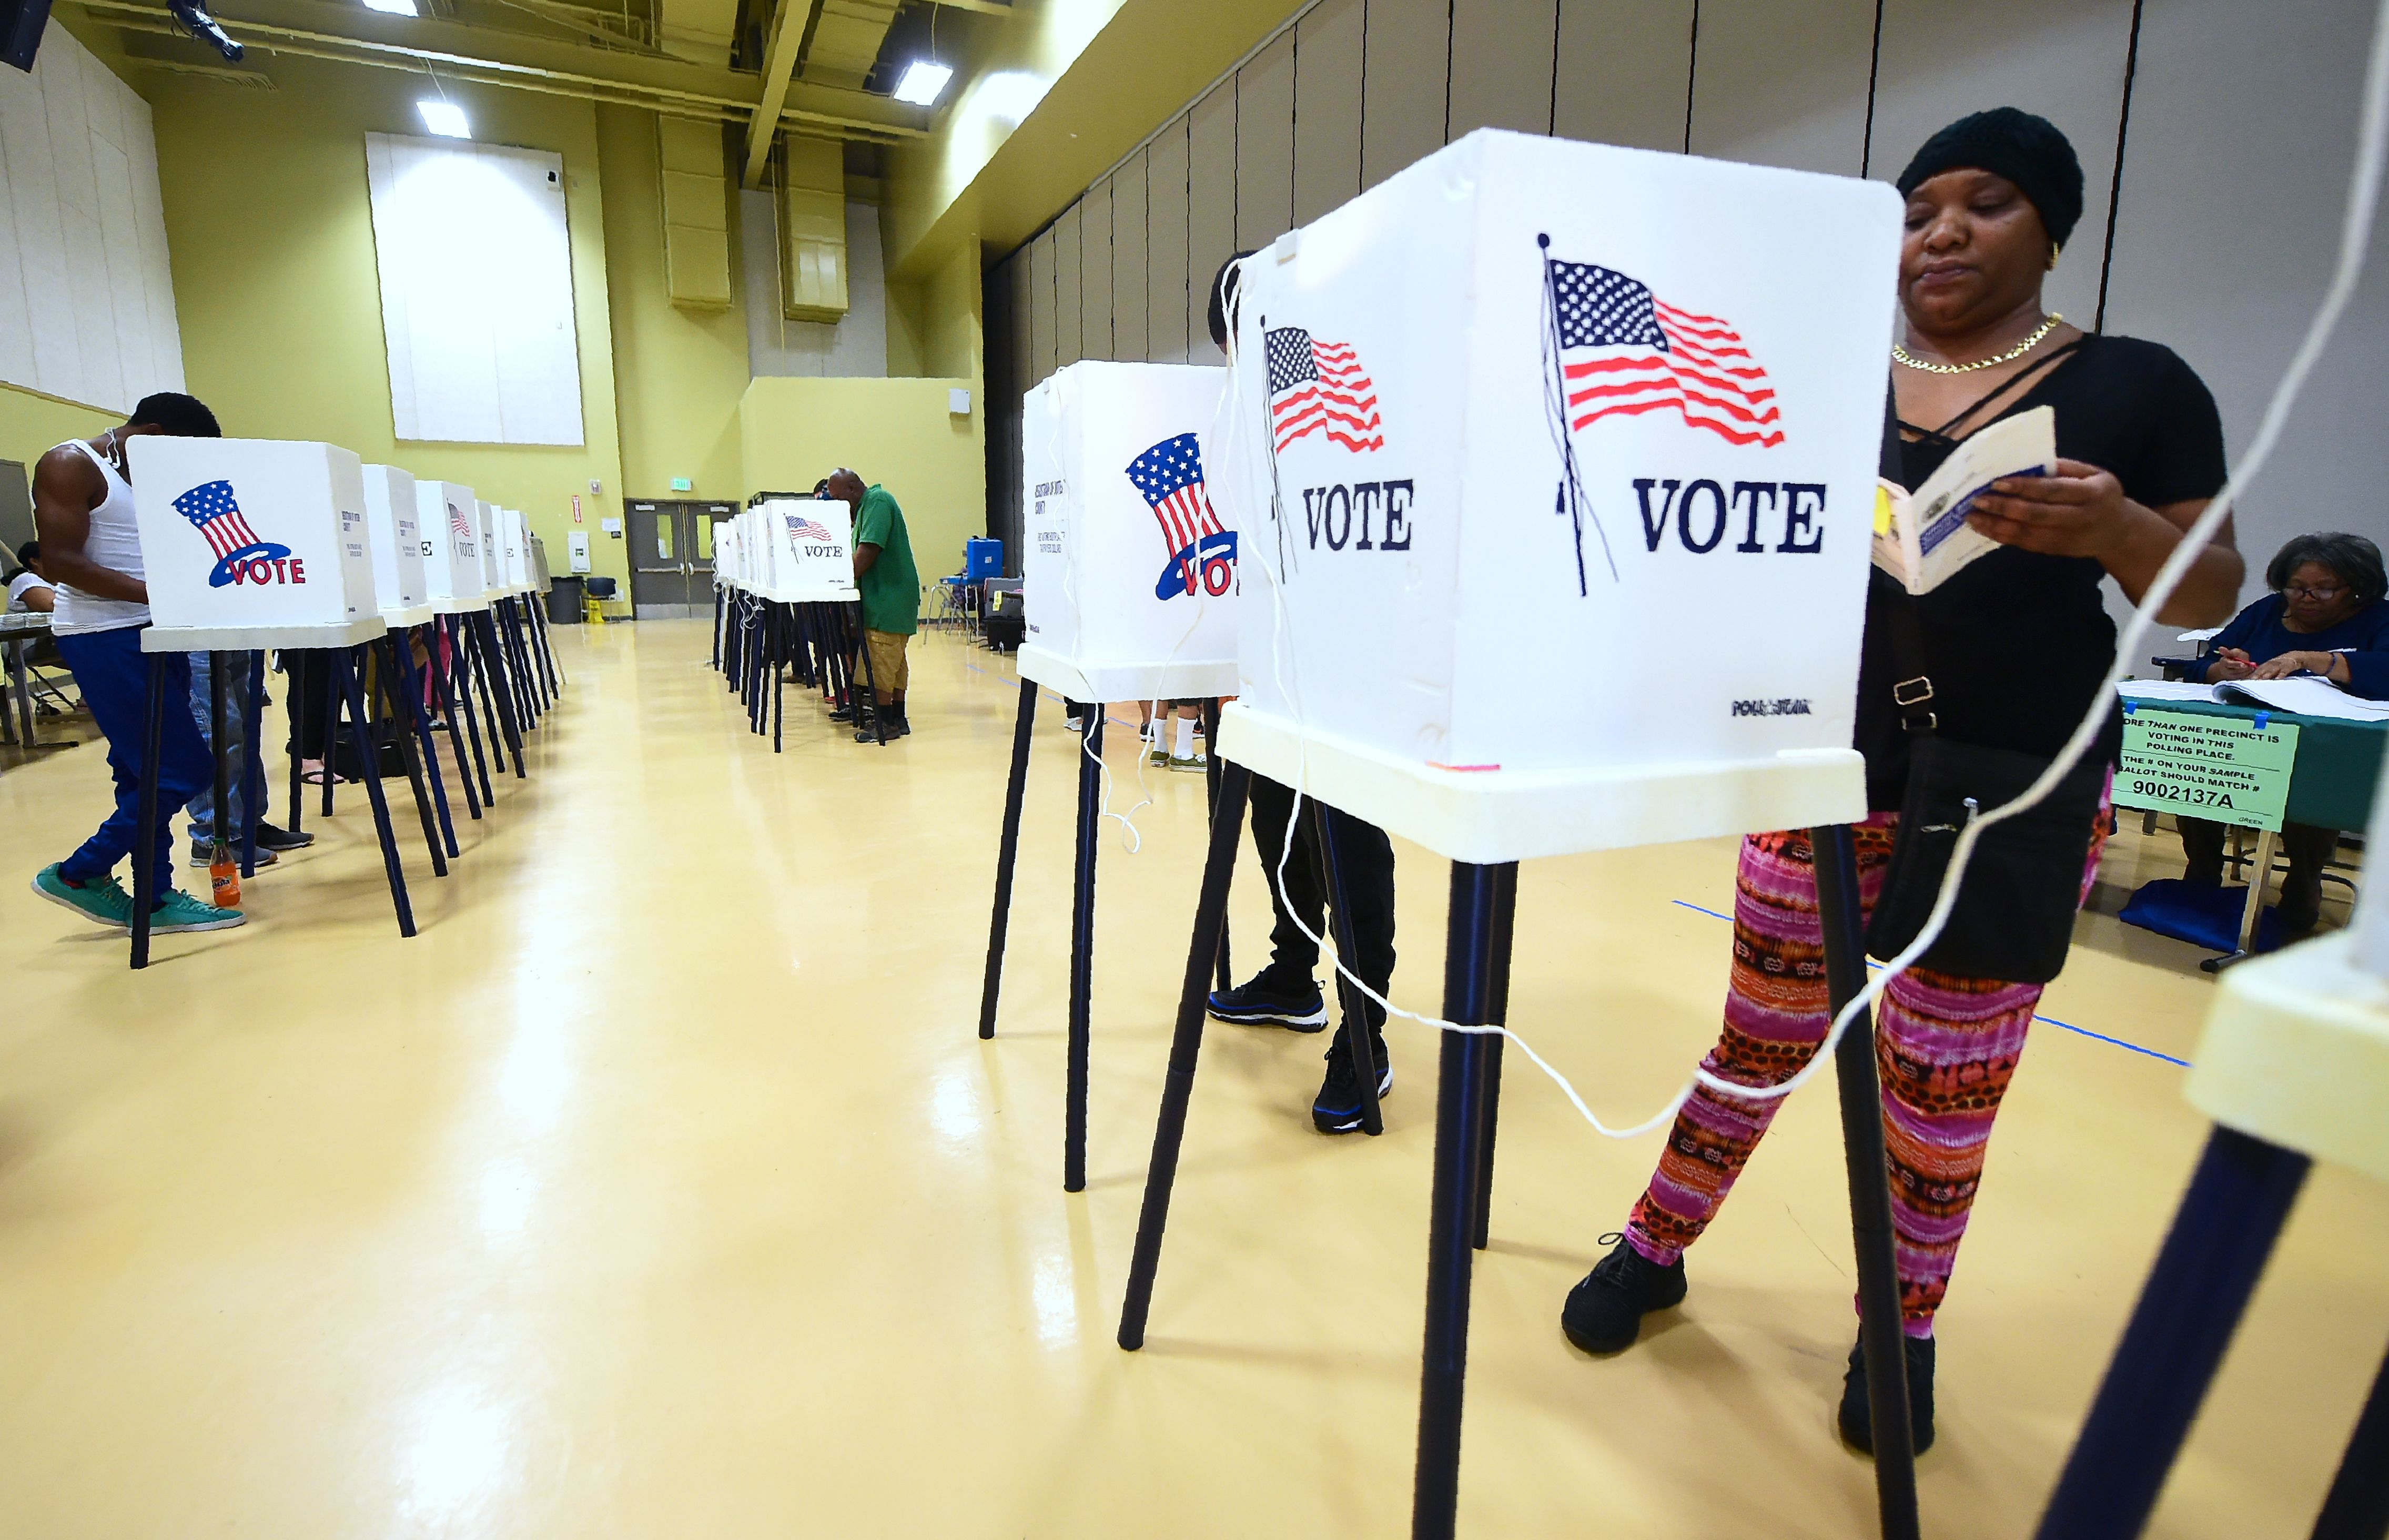 People vote from booths inside the gymnasium at the Barack Obama Prep Academy on November 6, 2018 in Los Angeles, California. - Americans started voting Tuesday in critical midterm elections that mark the first major voter test of Donald Trump's controversial presidency, with control of Congress at stake. About three quarters of the 50 states in the east and center of the country were already voting as polls began opening at 6:00 am (1100 GMT) for the day-long ballot. (FREDERIC J. BROWN/AFP via Getty Images)